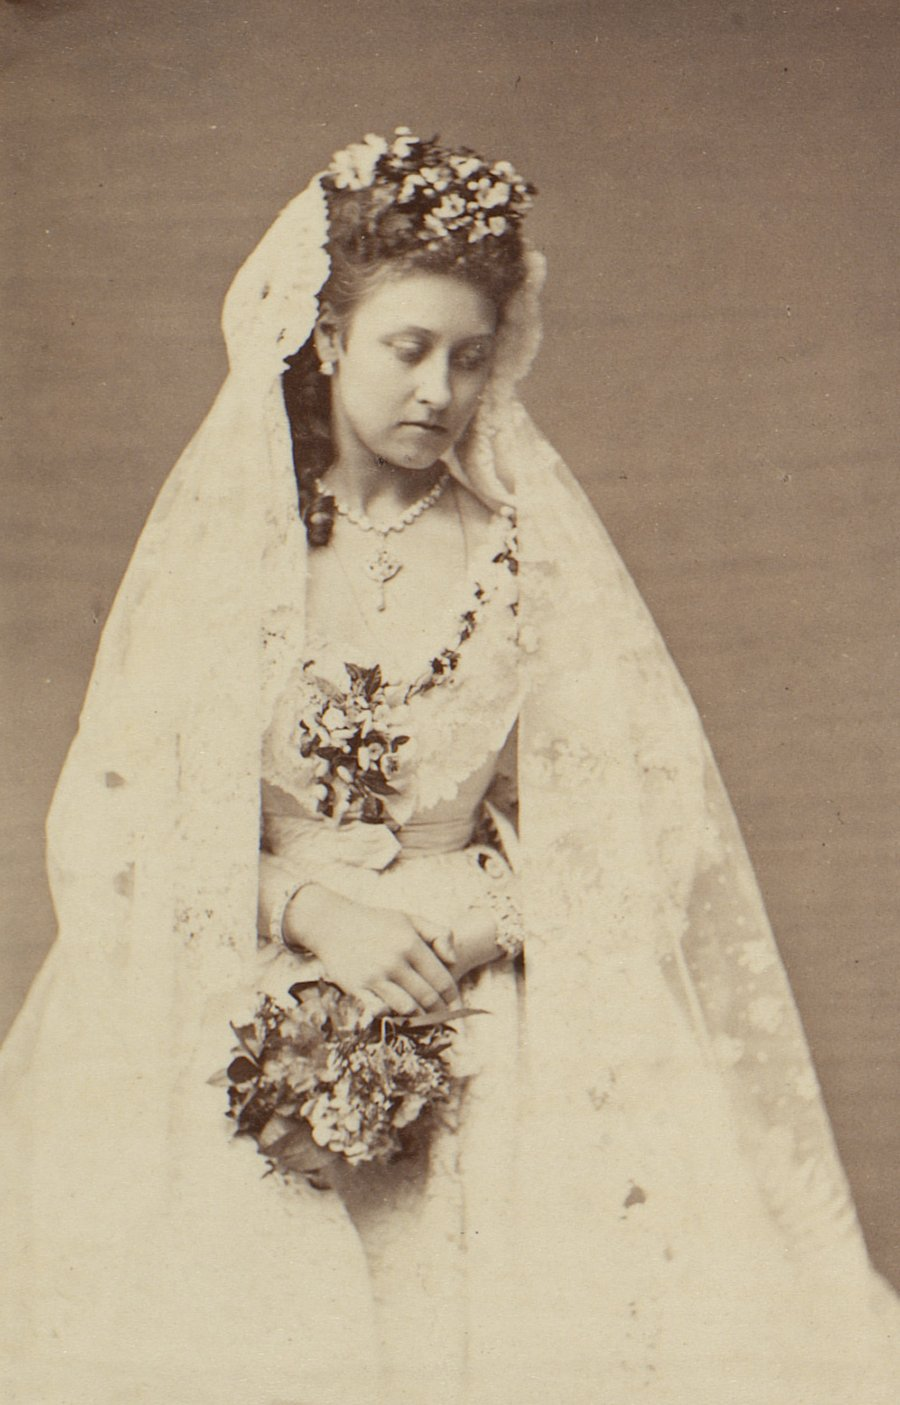 Princess Louise on her wedding day, 1871